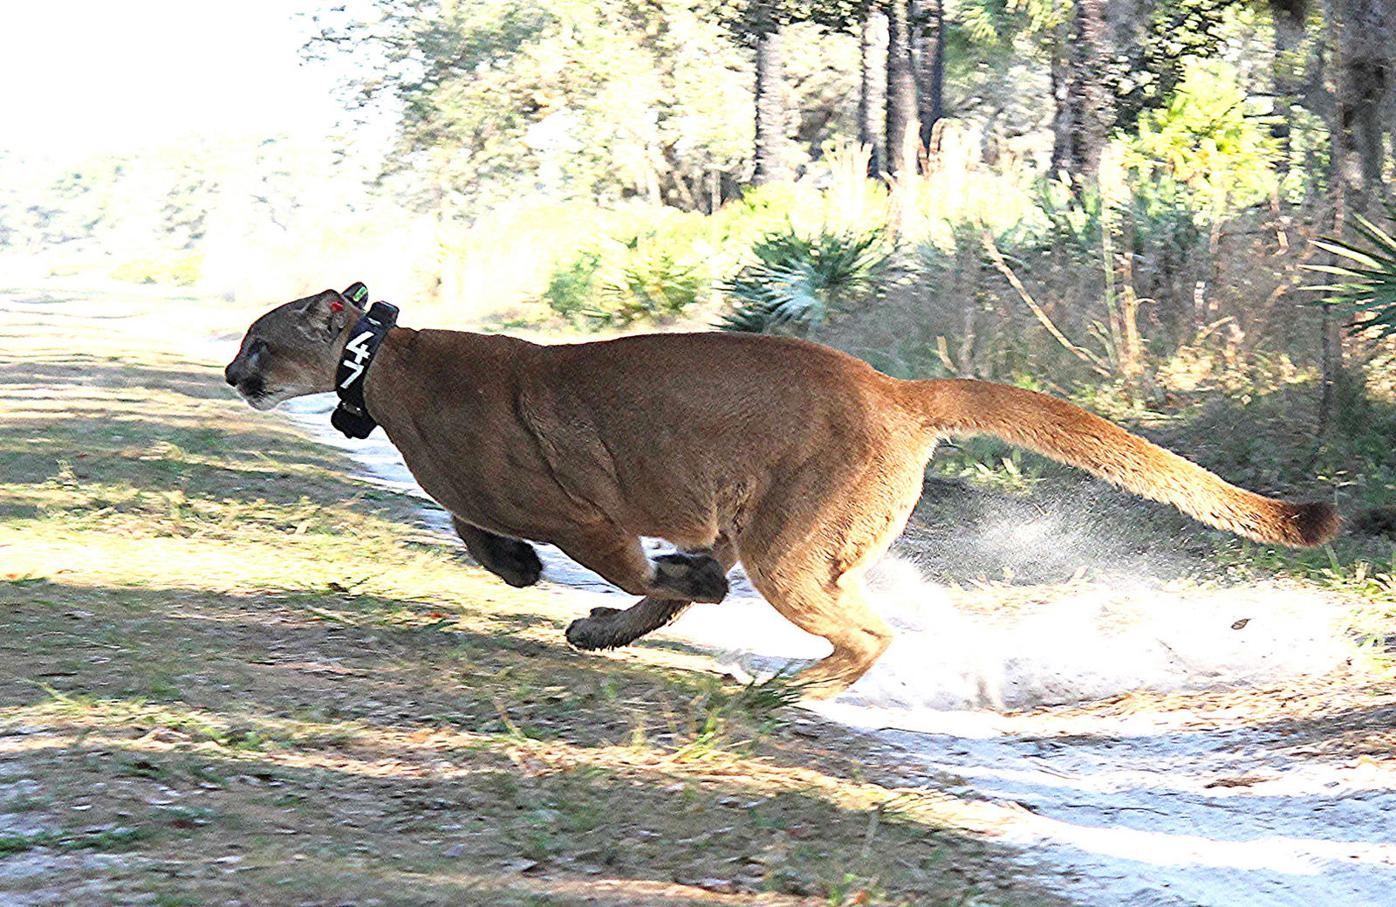 Panther released after car accident